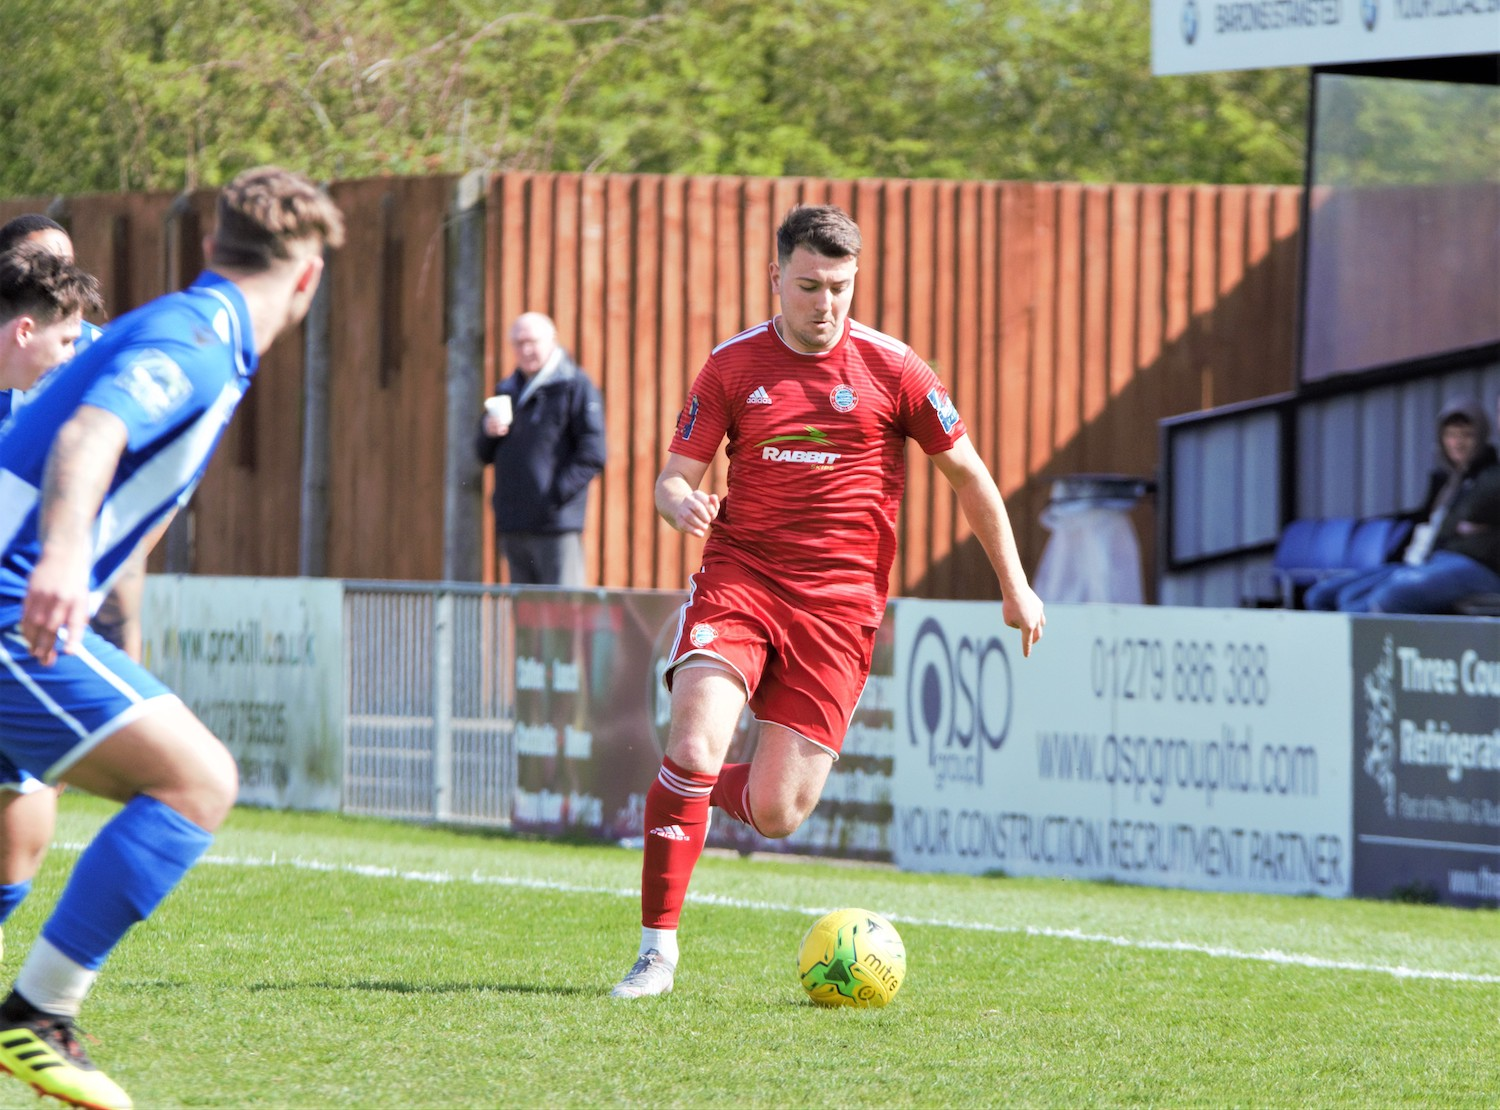 Read the full article - Stortford Stun Clueless Reds